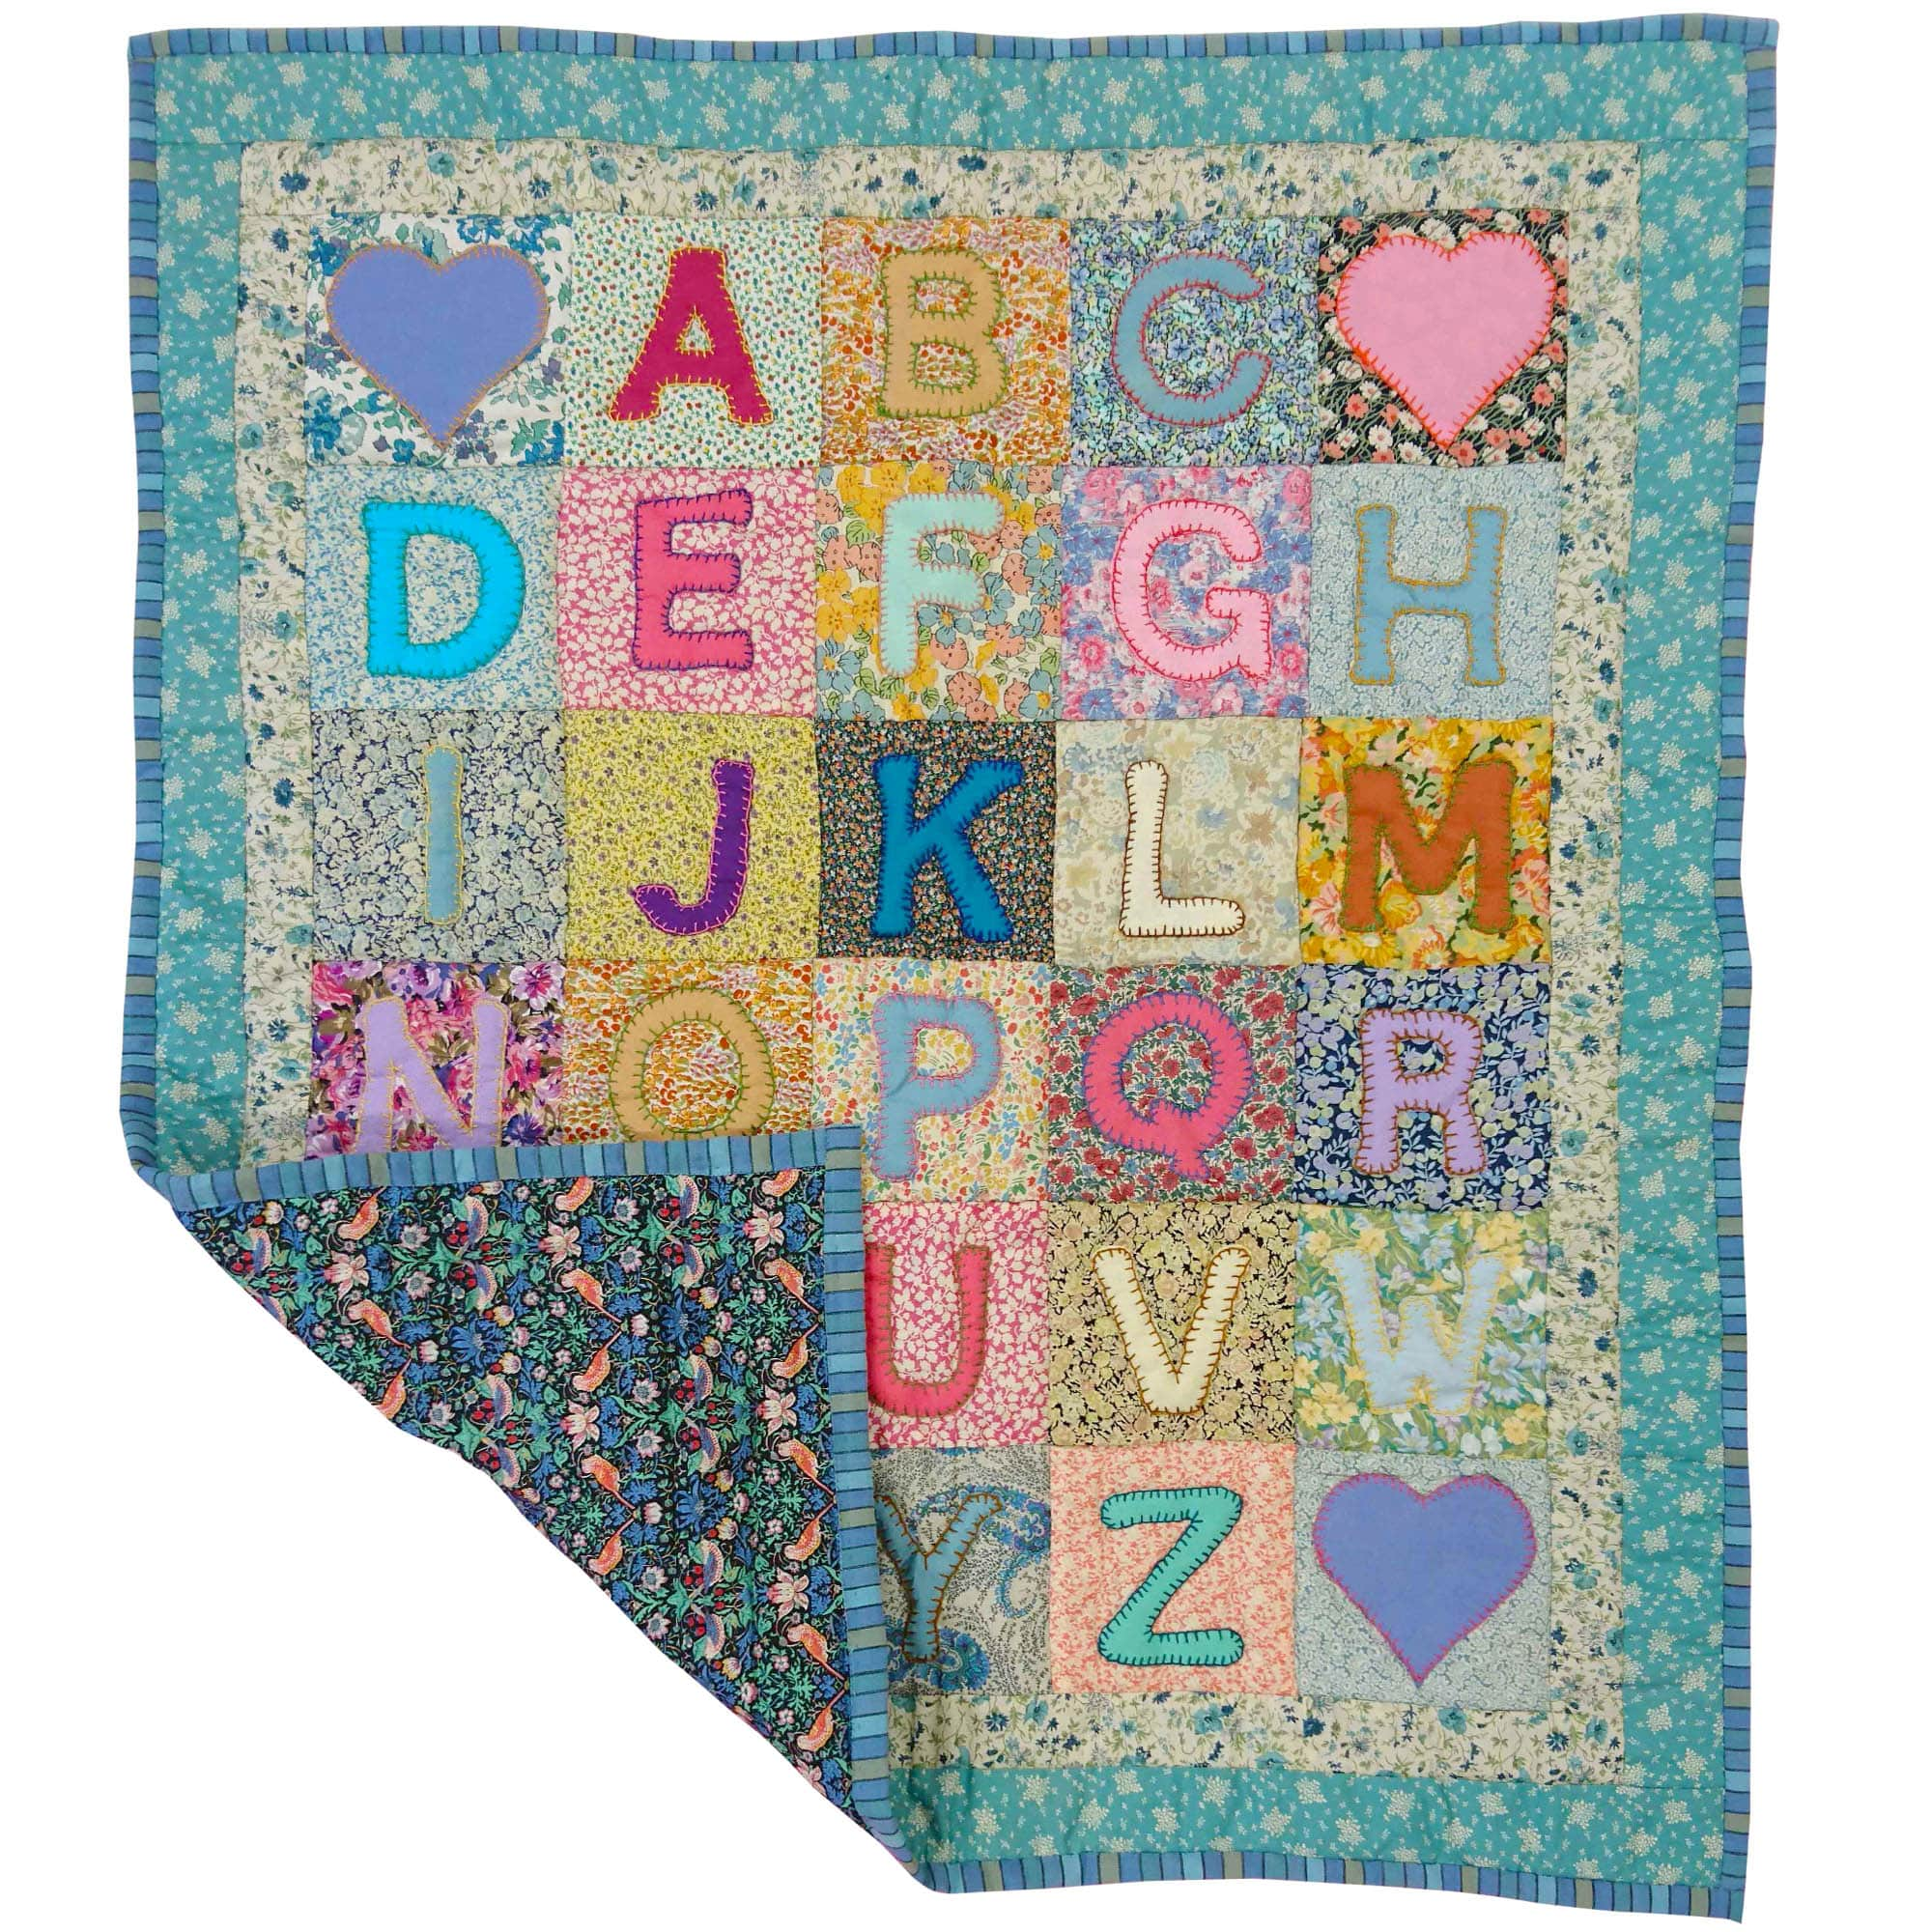 Children's Handmade Alphabet Quilt Floral Turquoise and Pink